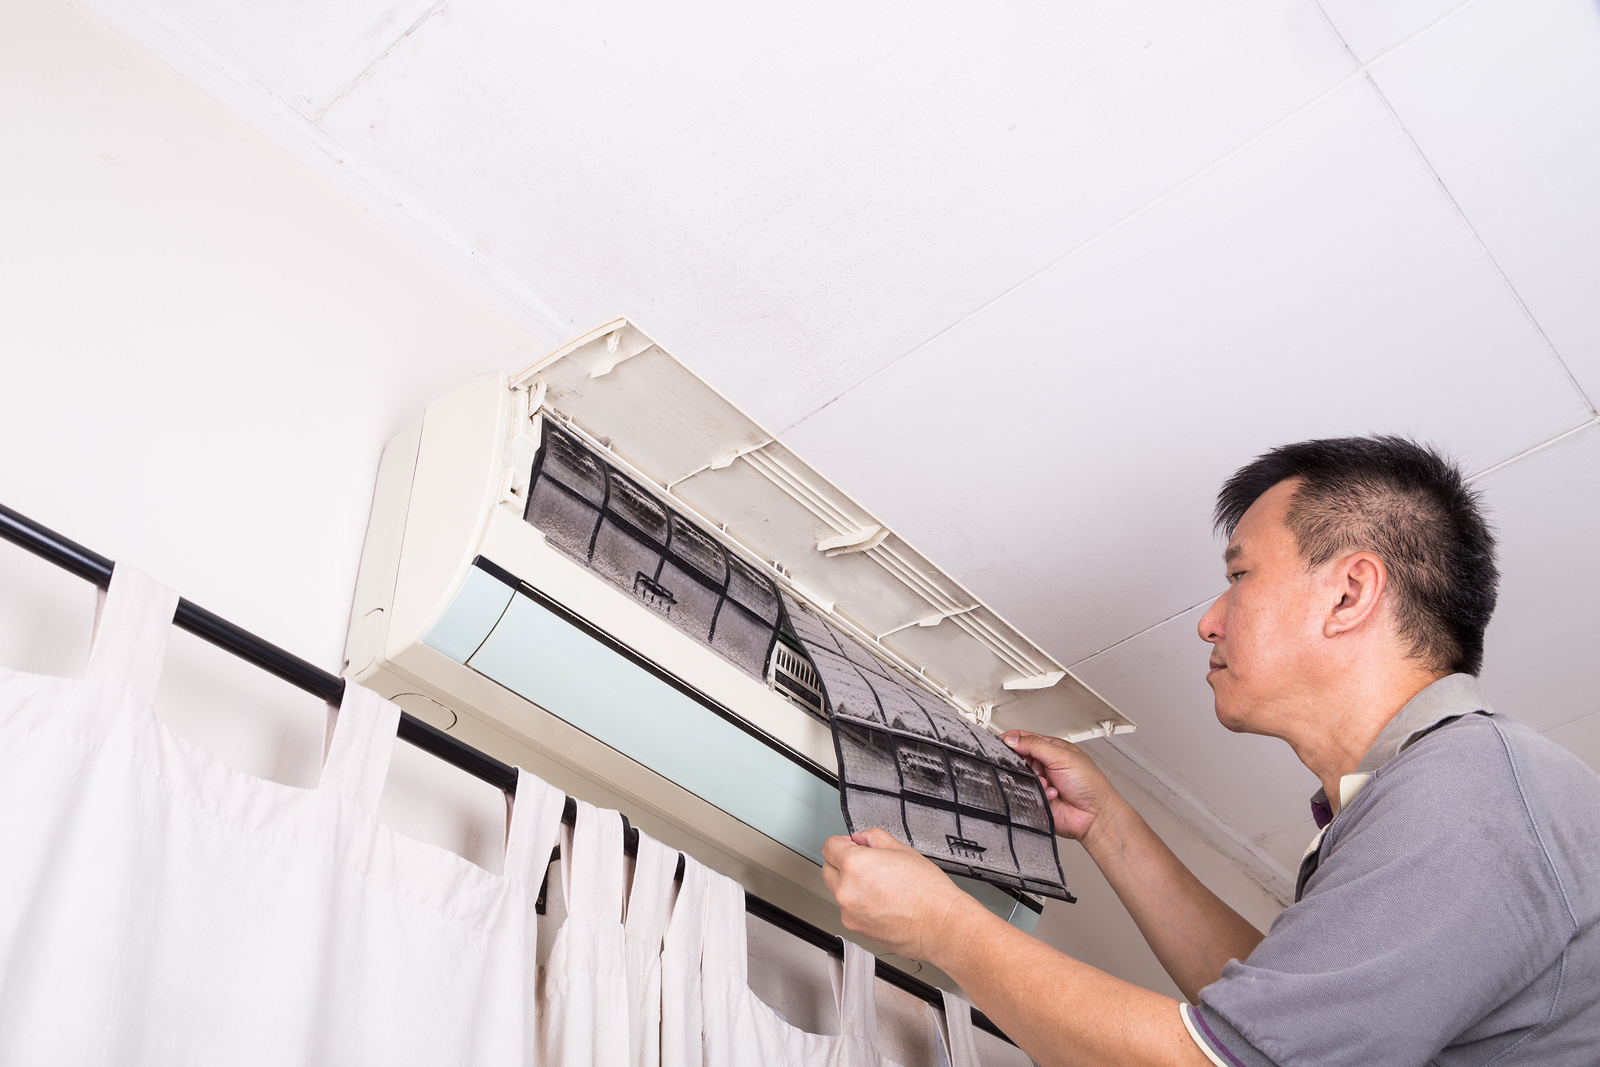 Technician servicing the indoor air-conditioning unit